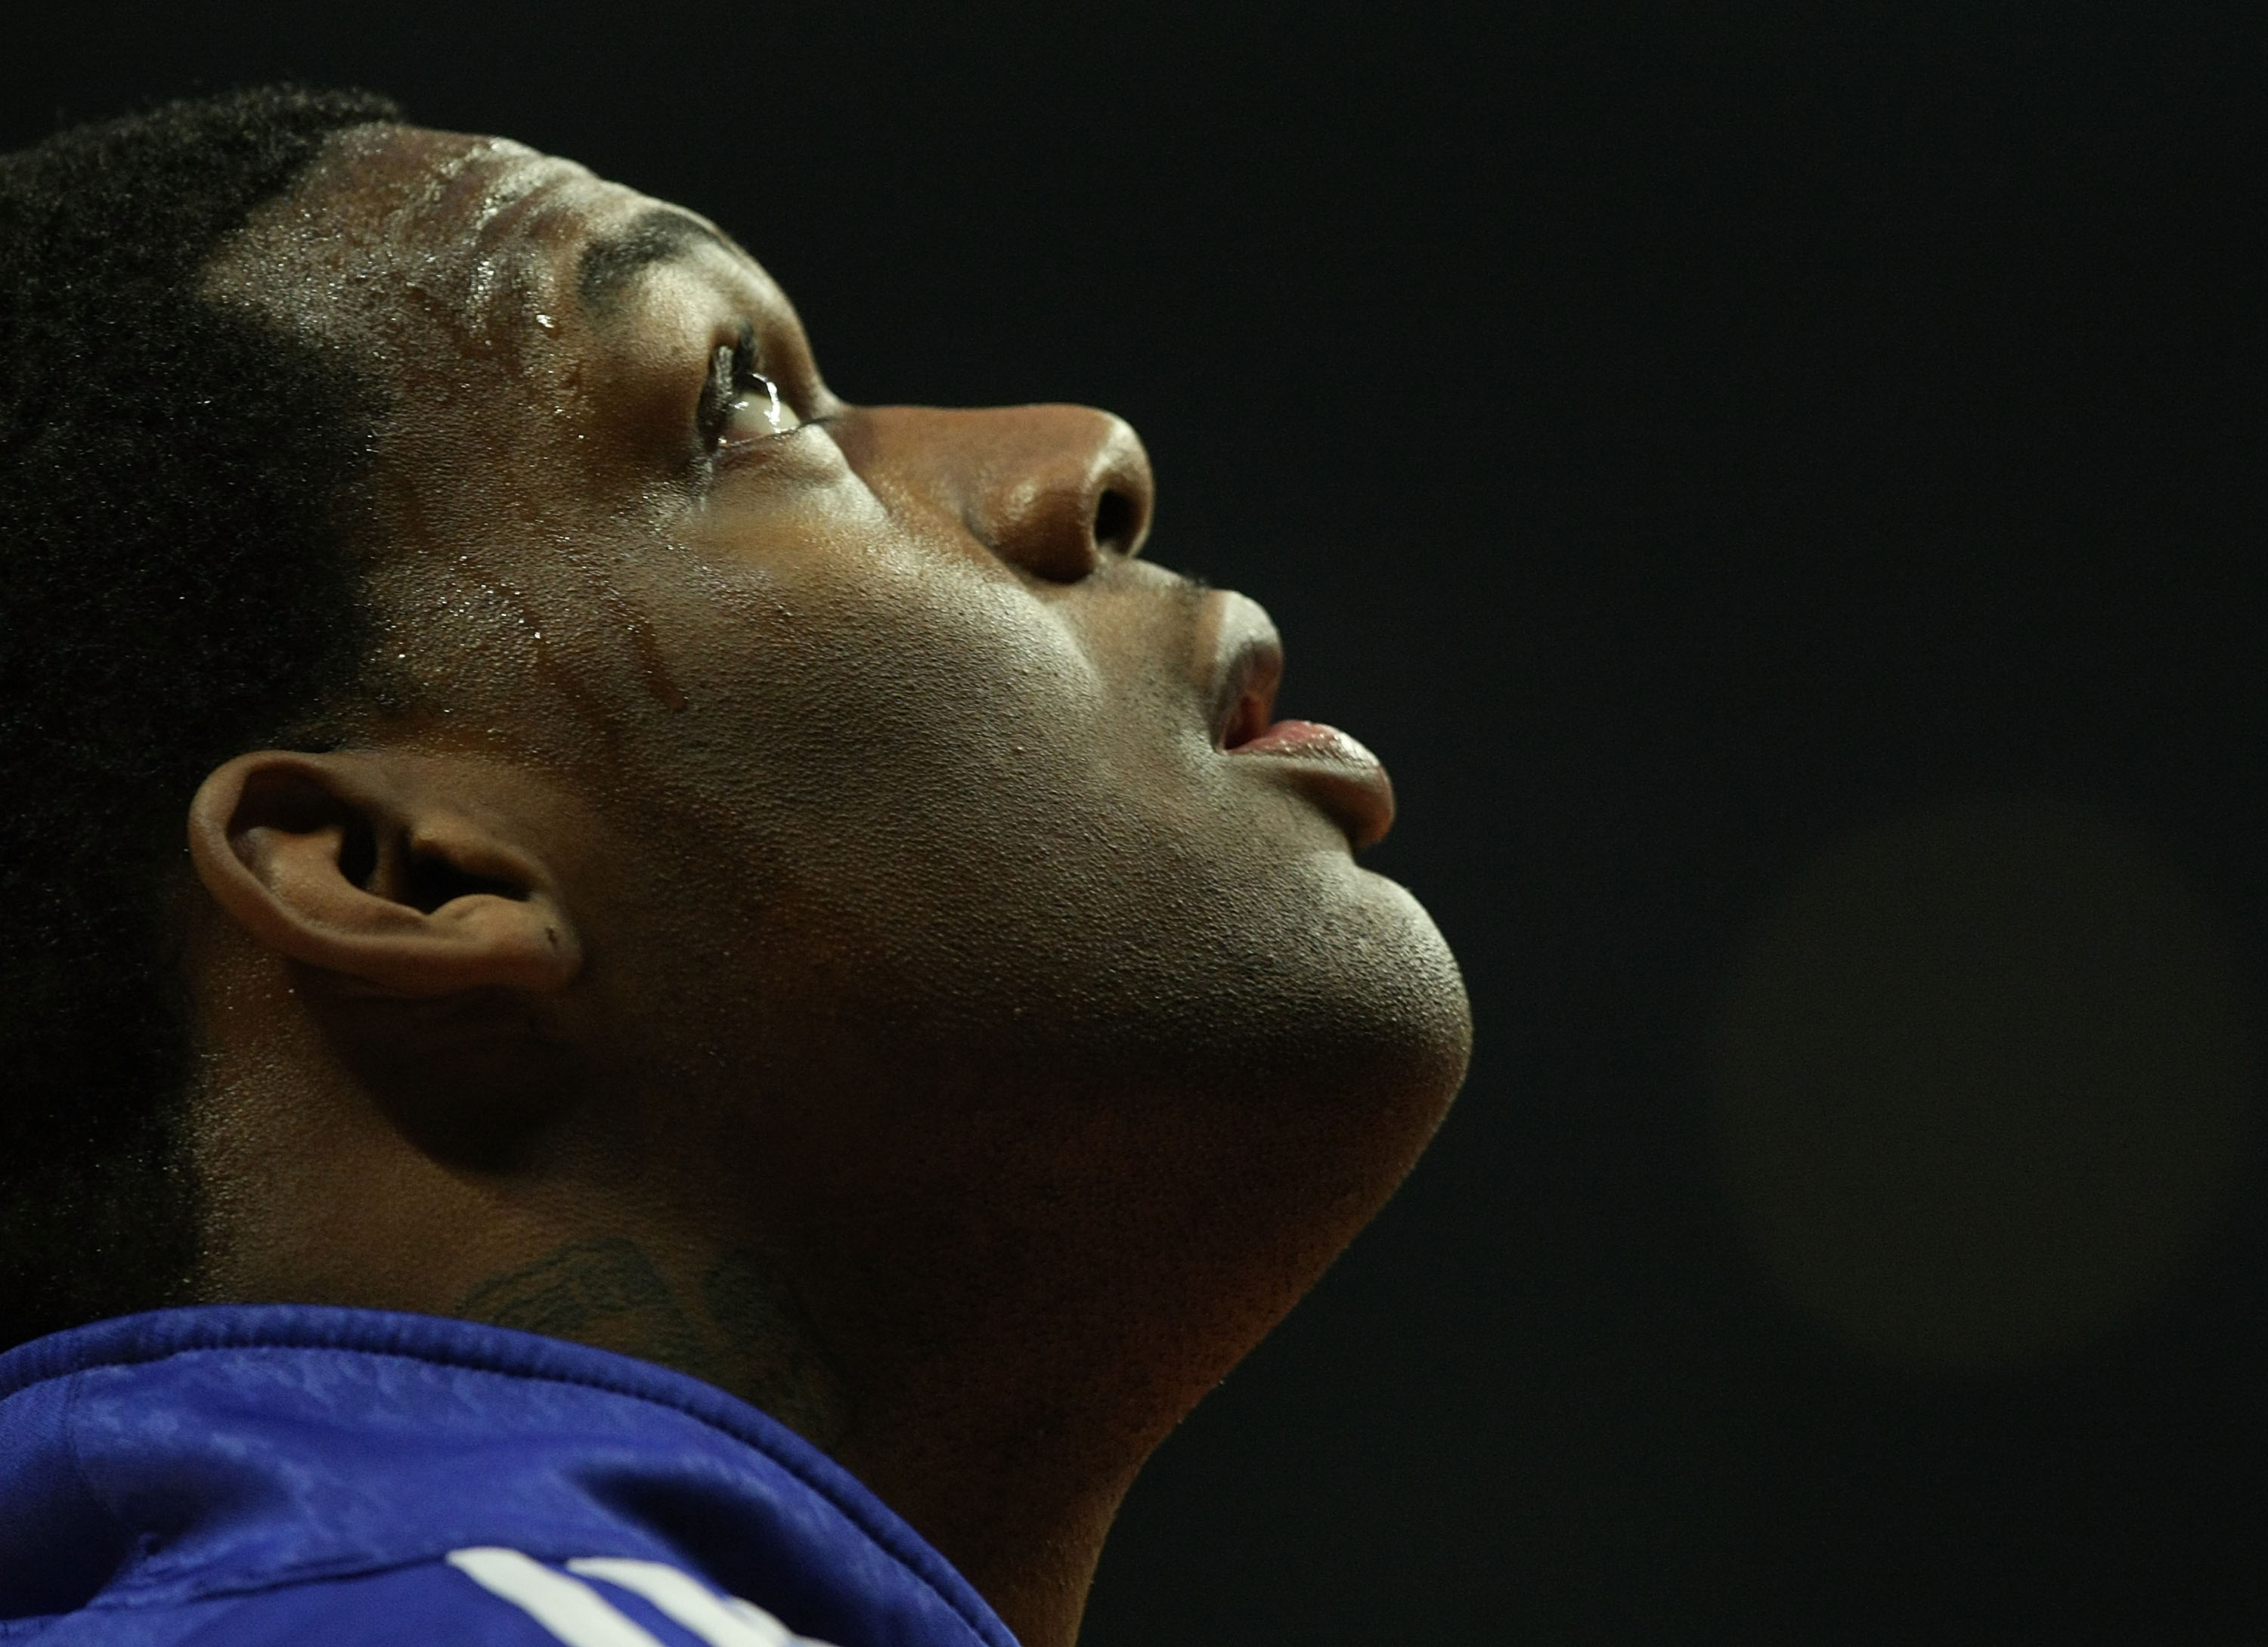 CHICAGO - JANUARY 08: Eddy Curry #34 of the New York Knicks waits for a ball during warm-ups before a game against the Chicago Bulls on January 8, 2008 at the United Center in Chicago, Illinois. The Knicks defeated the Bulls 105-100. NOTE TO USER: User ex